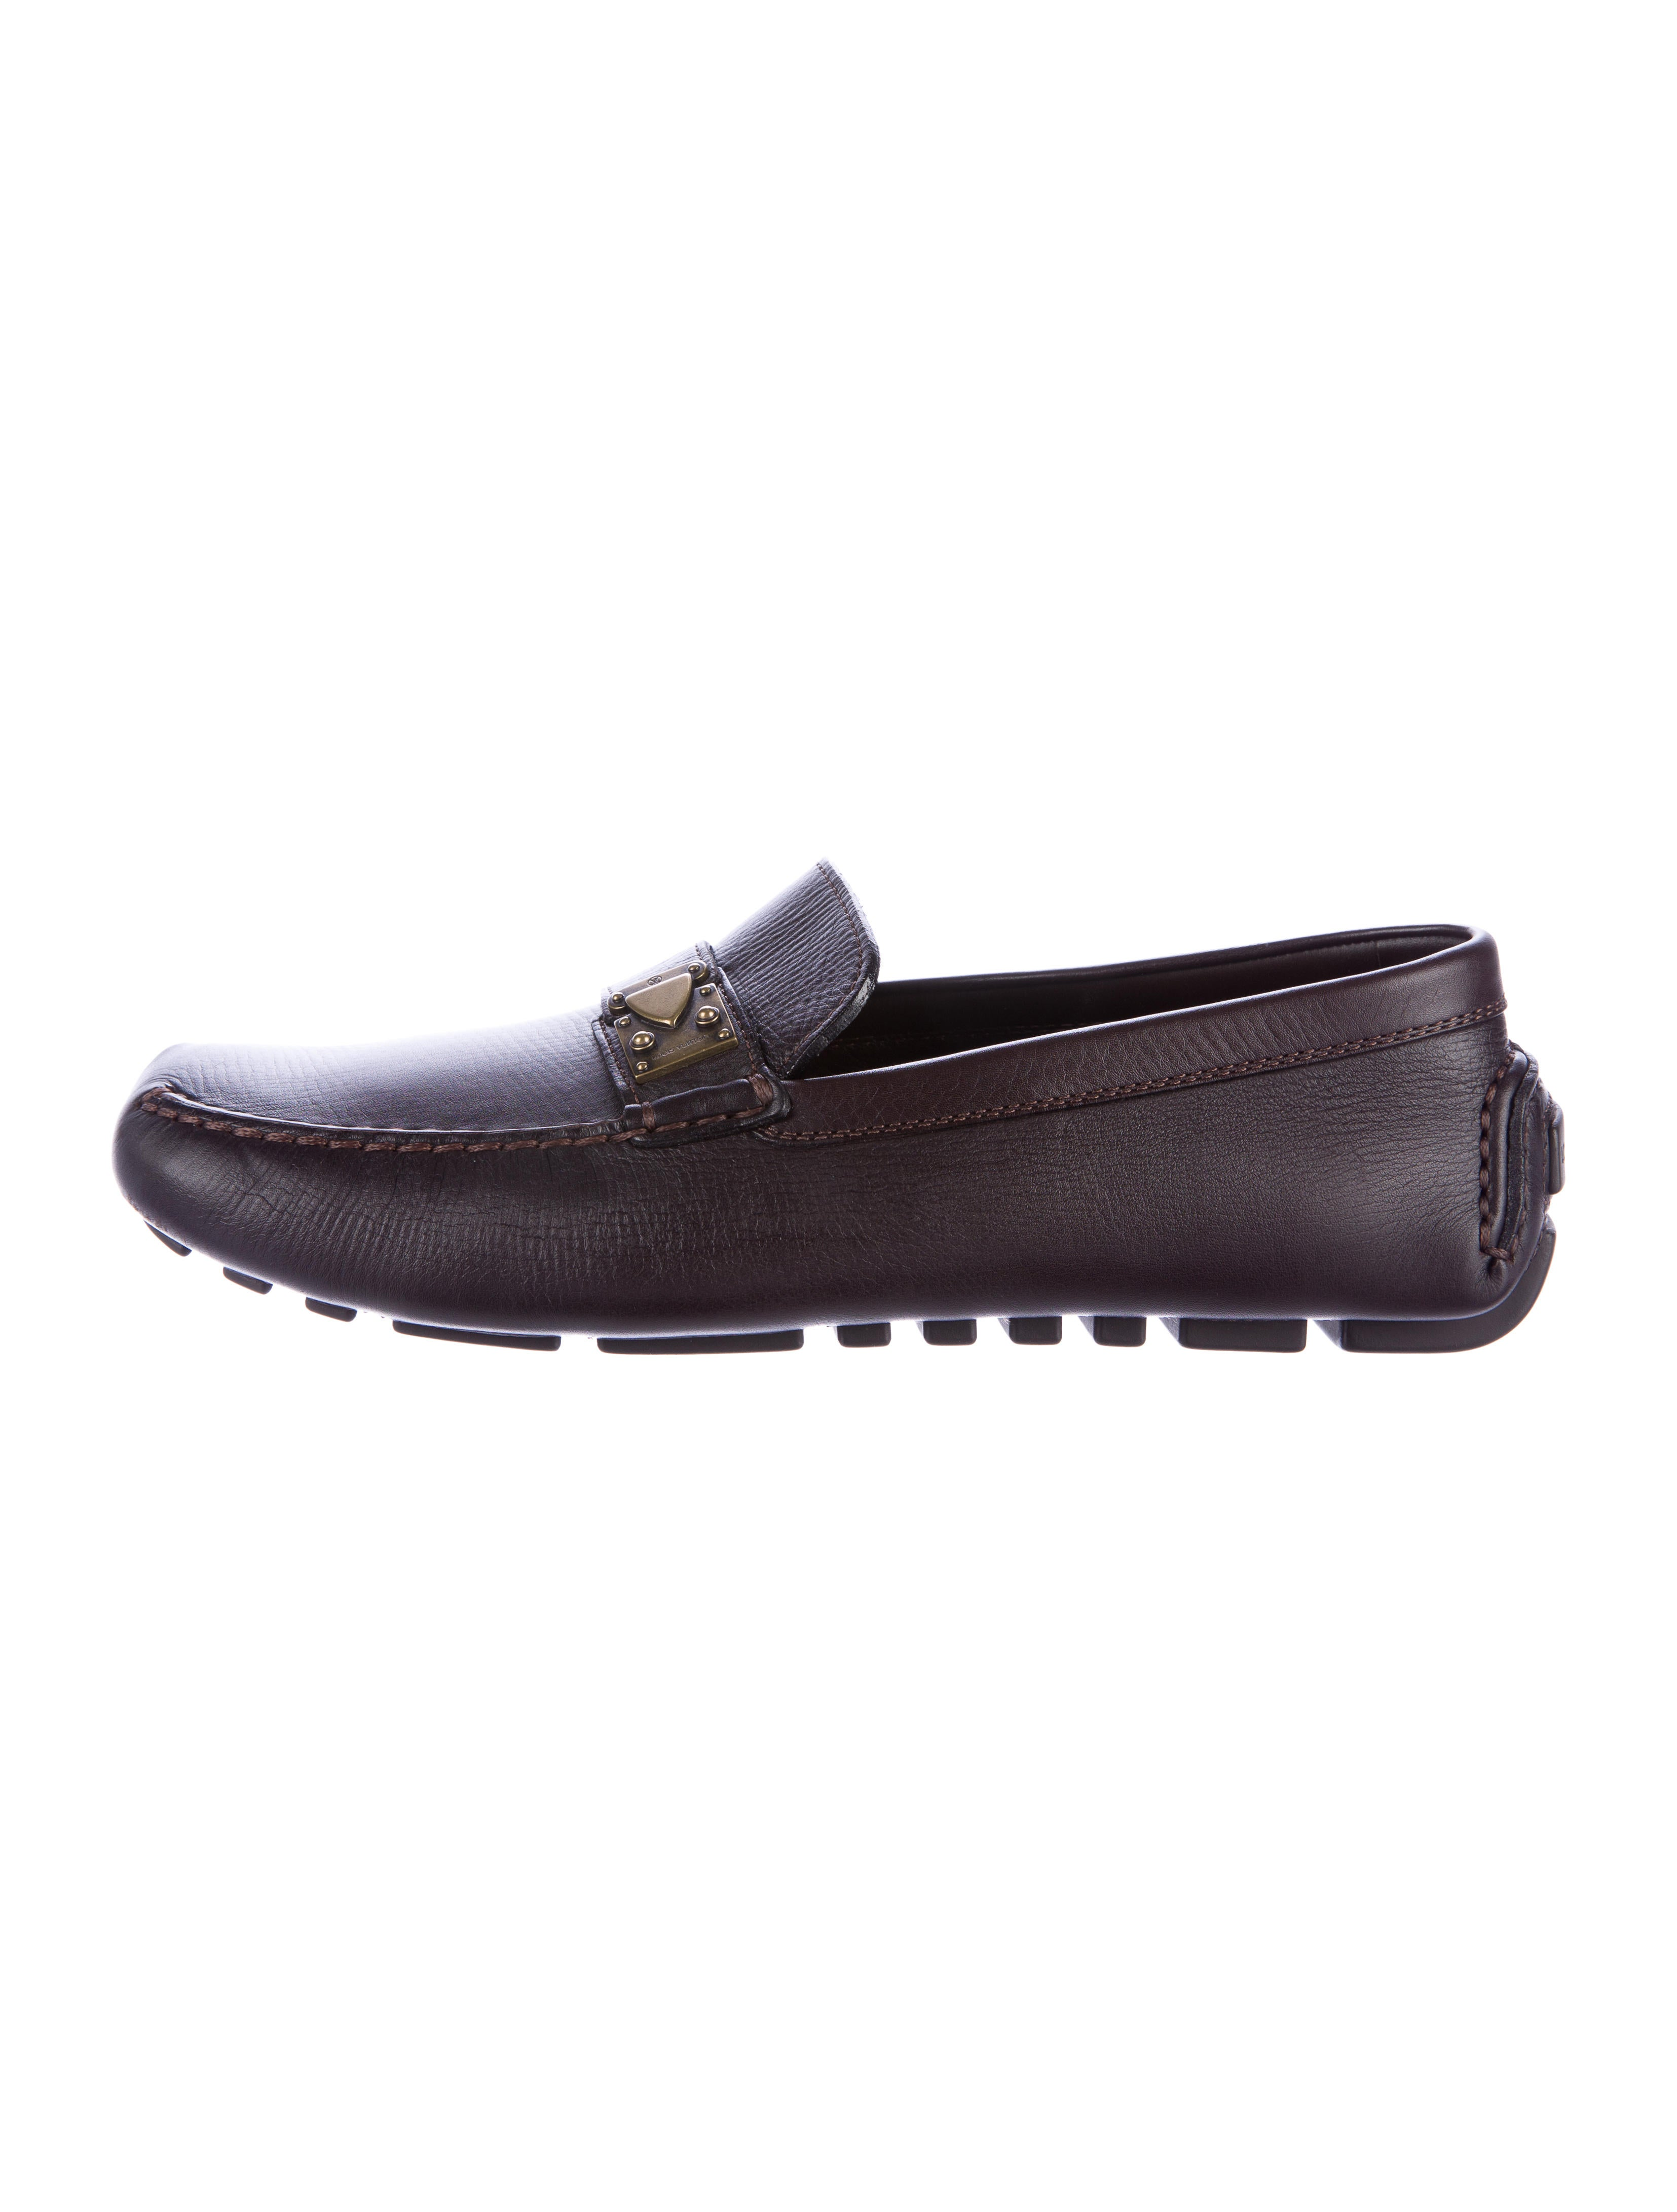 louis vuitton loafer shoes for - 28 images - louis vuitton leather driving loafers shoes ...